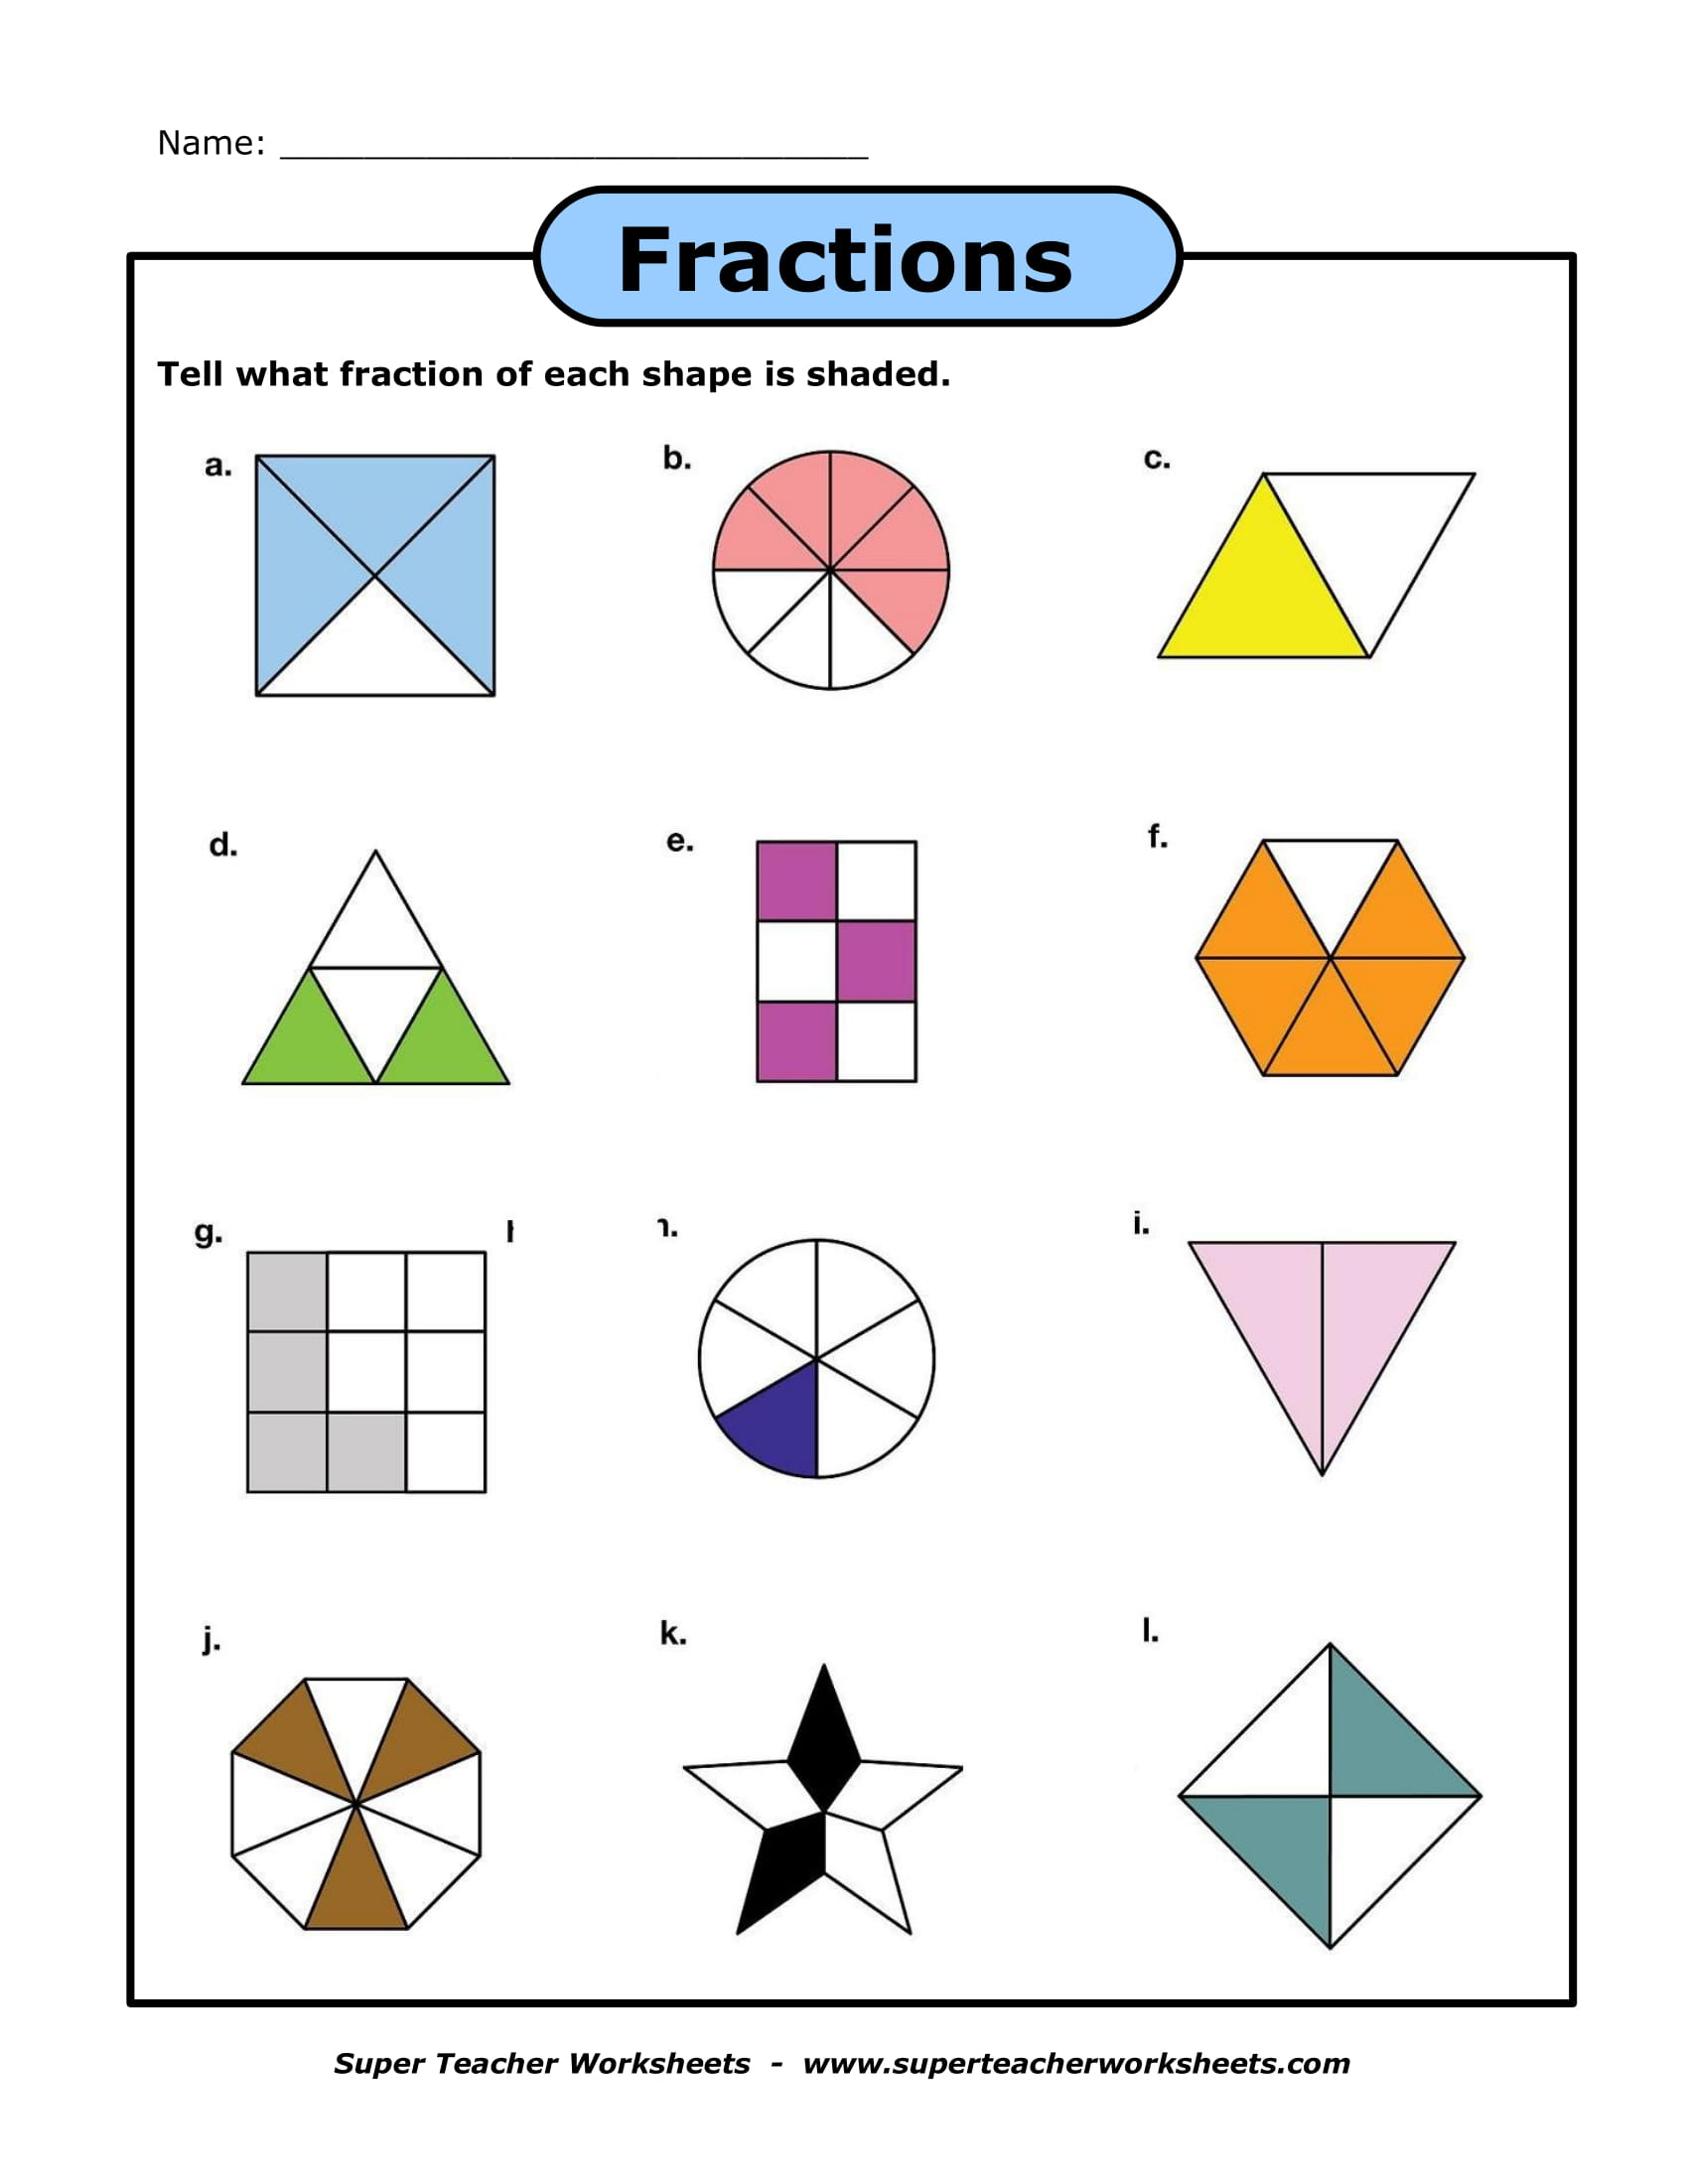 Matching Equivalent Fractions Worksheet